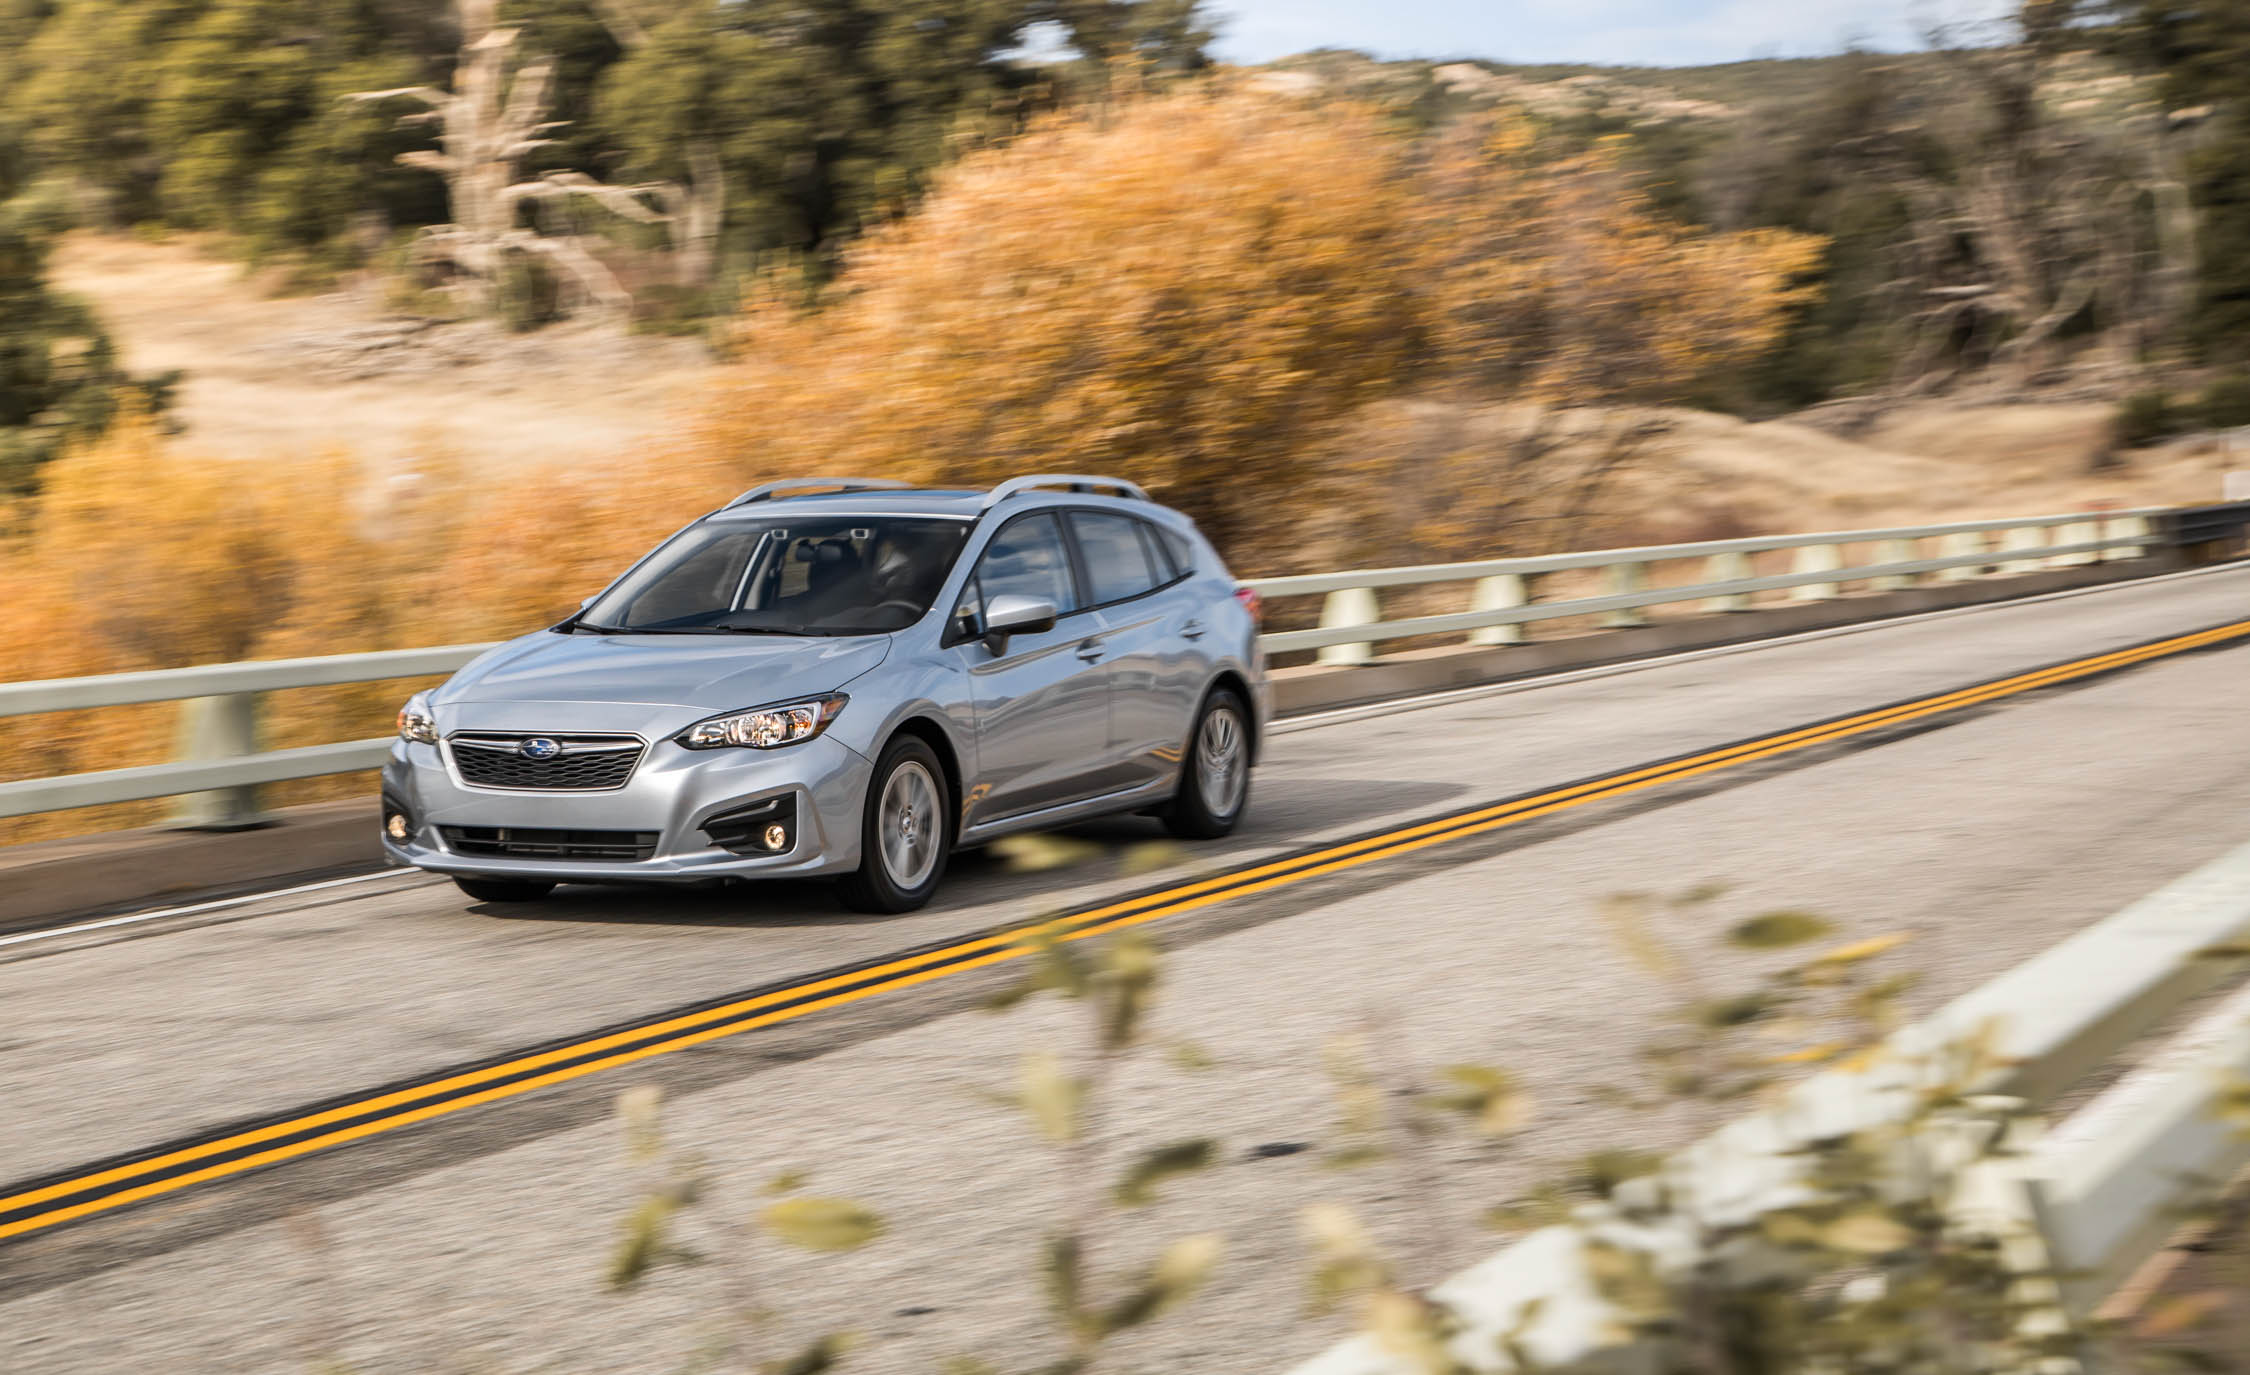 2017 Subaru Impreza Hatchback (Photo 13 of 33)